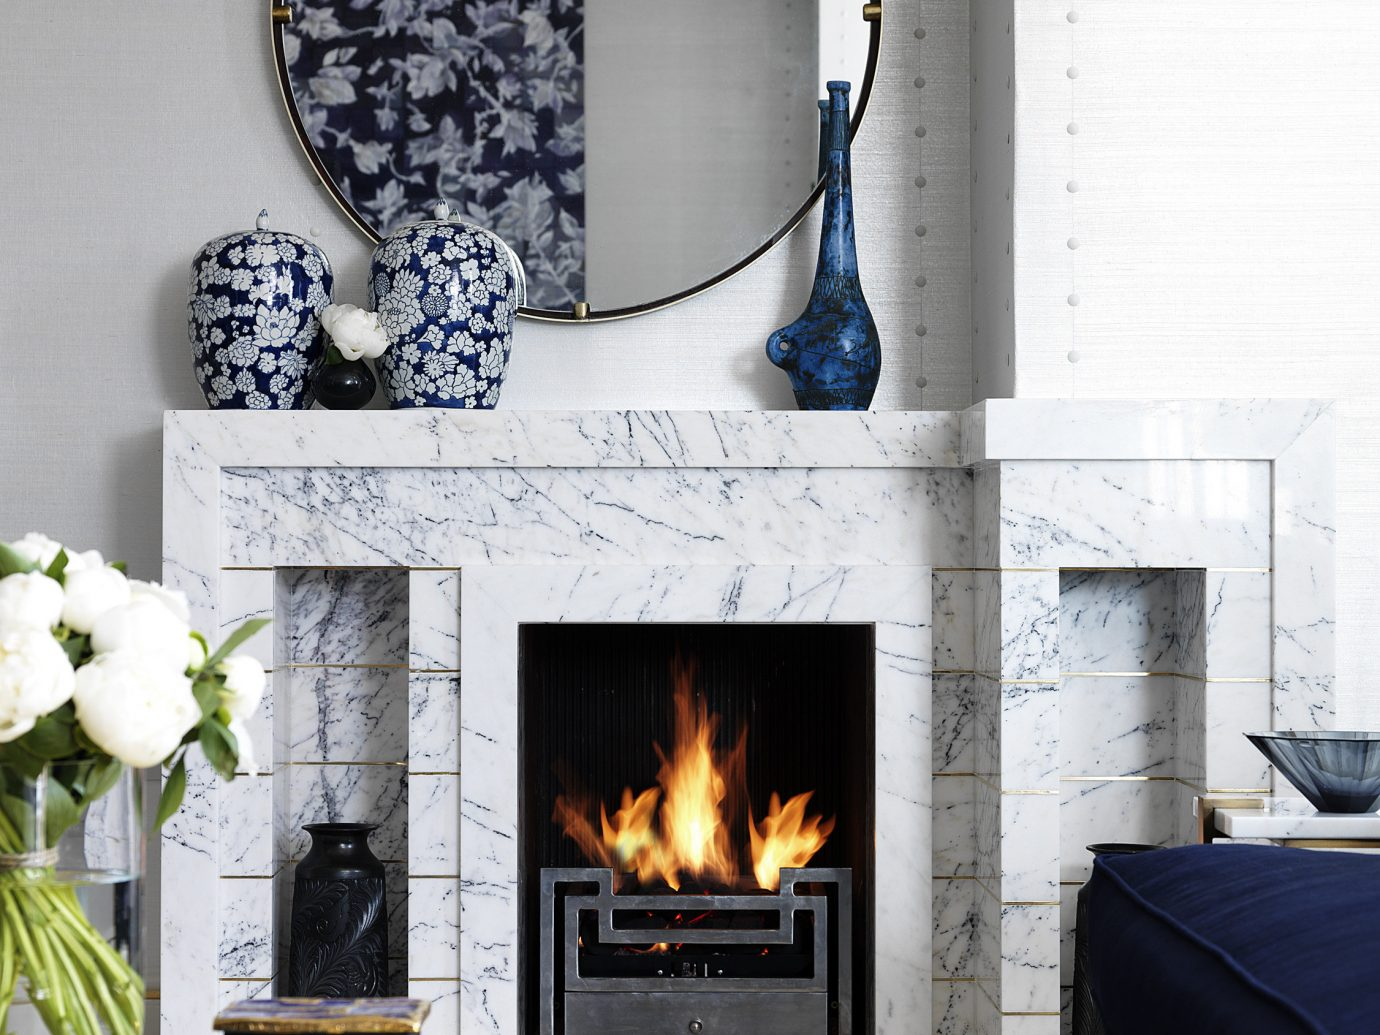 Hotels London Luxury Travel Fireplace fire Living indoor hearth Nature room stone building living room wood burning stove furniture lighting home interior design area